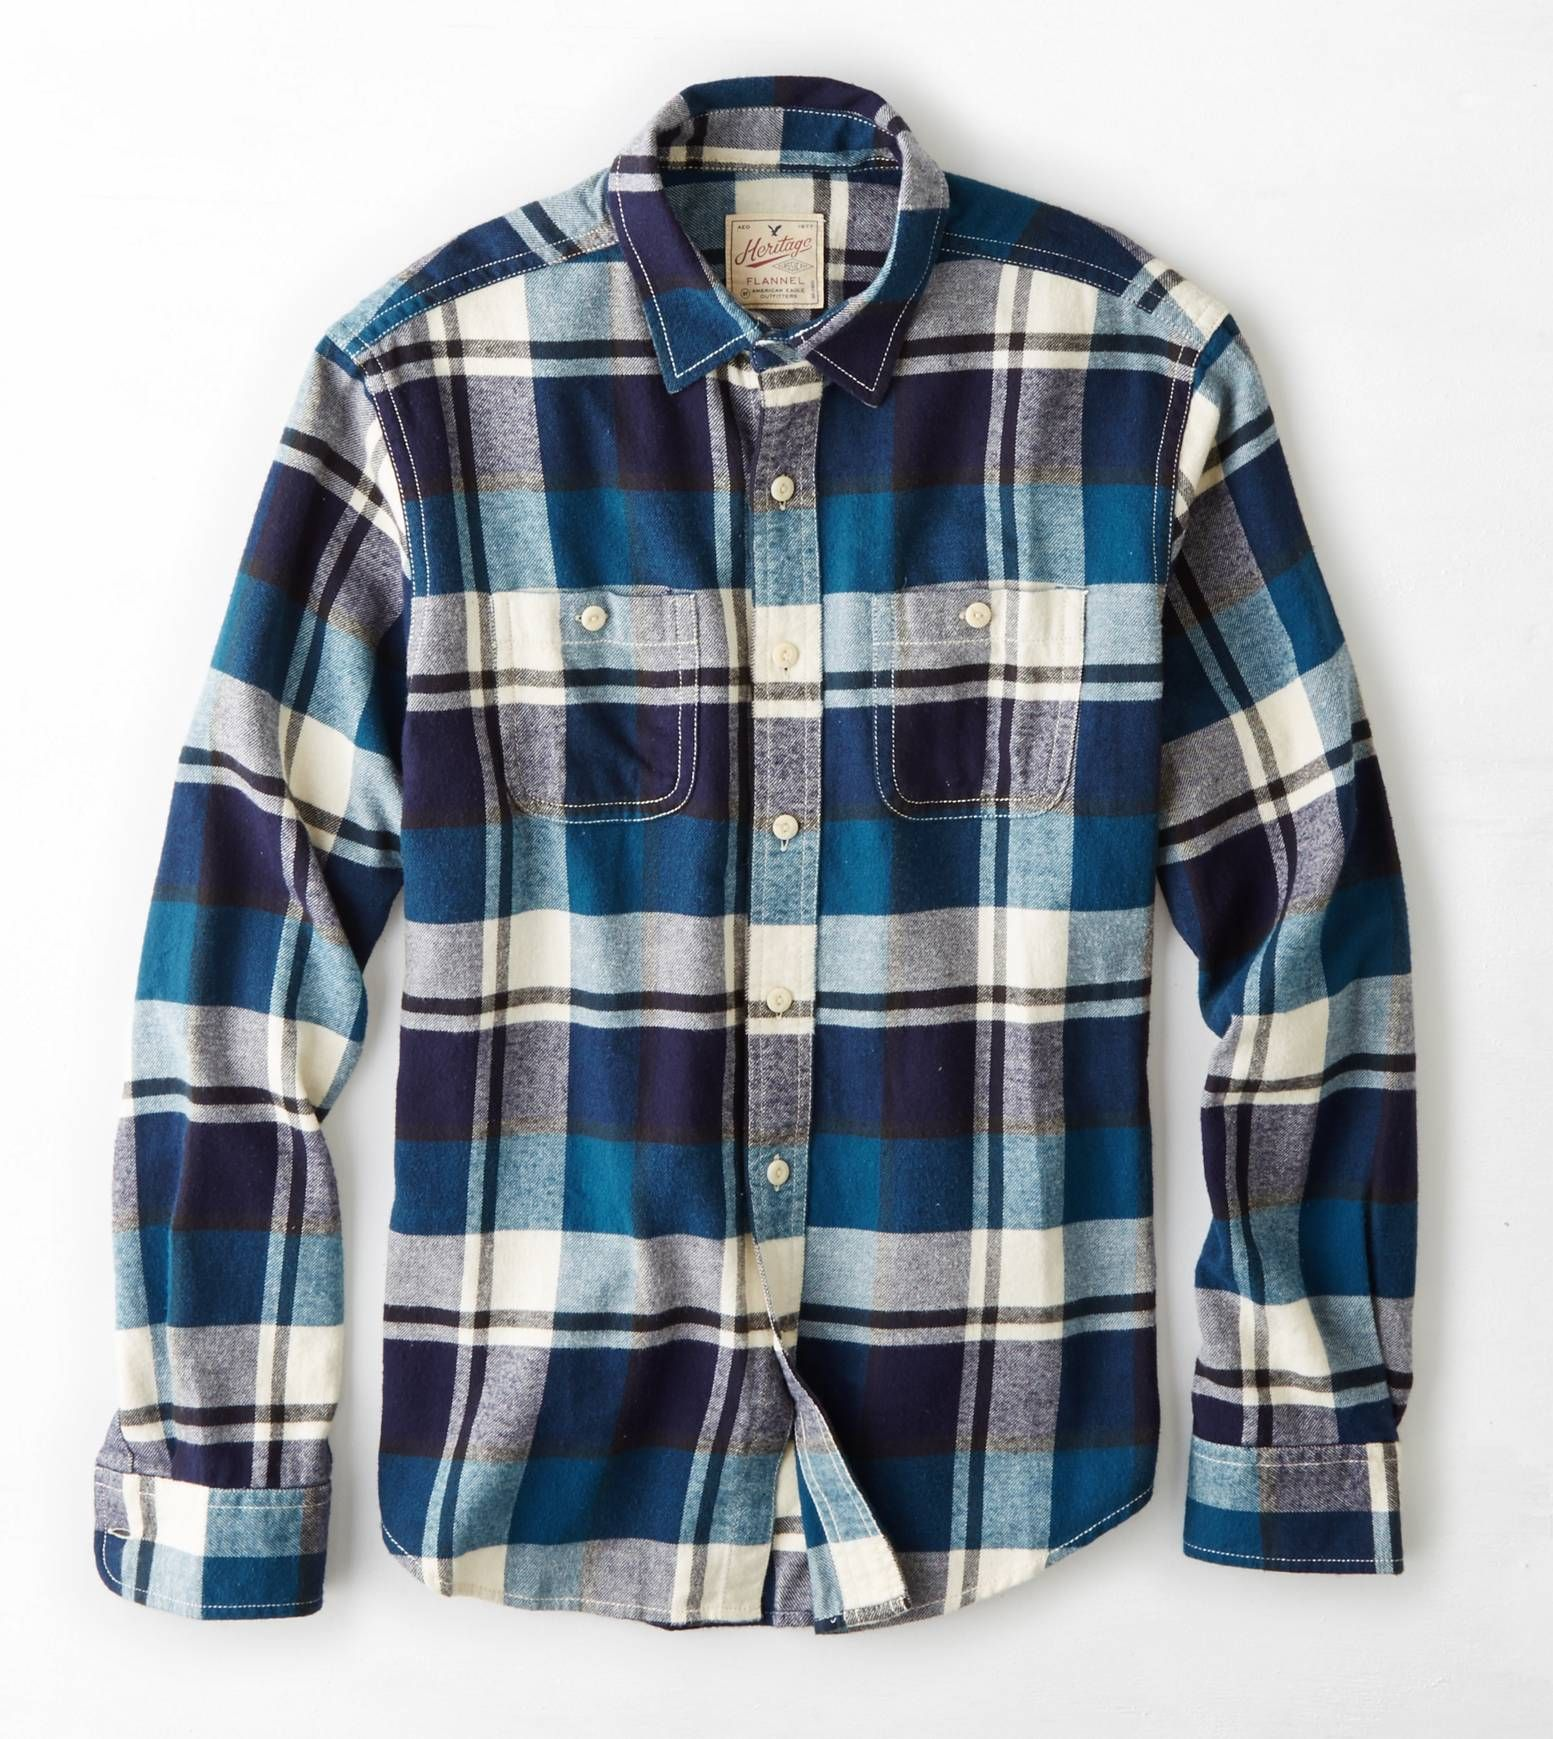 Flannel shirt men outfit  Blue AEO Heritage Flannel  for my sharp dressed man  Pinterest